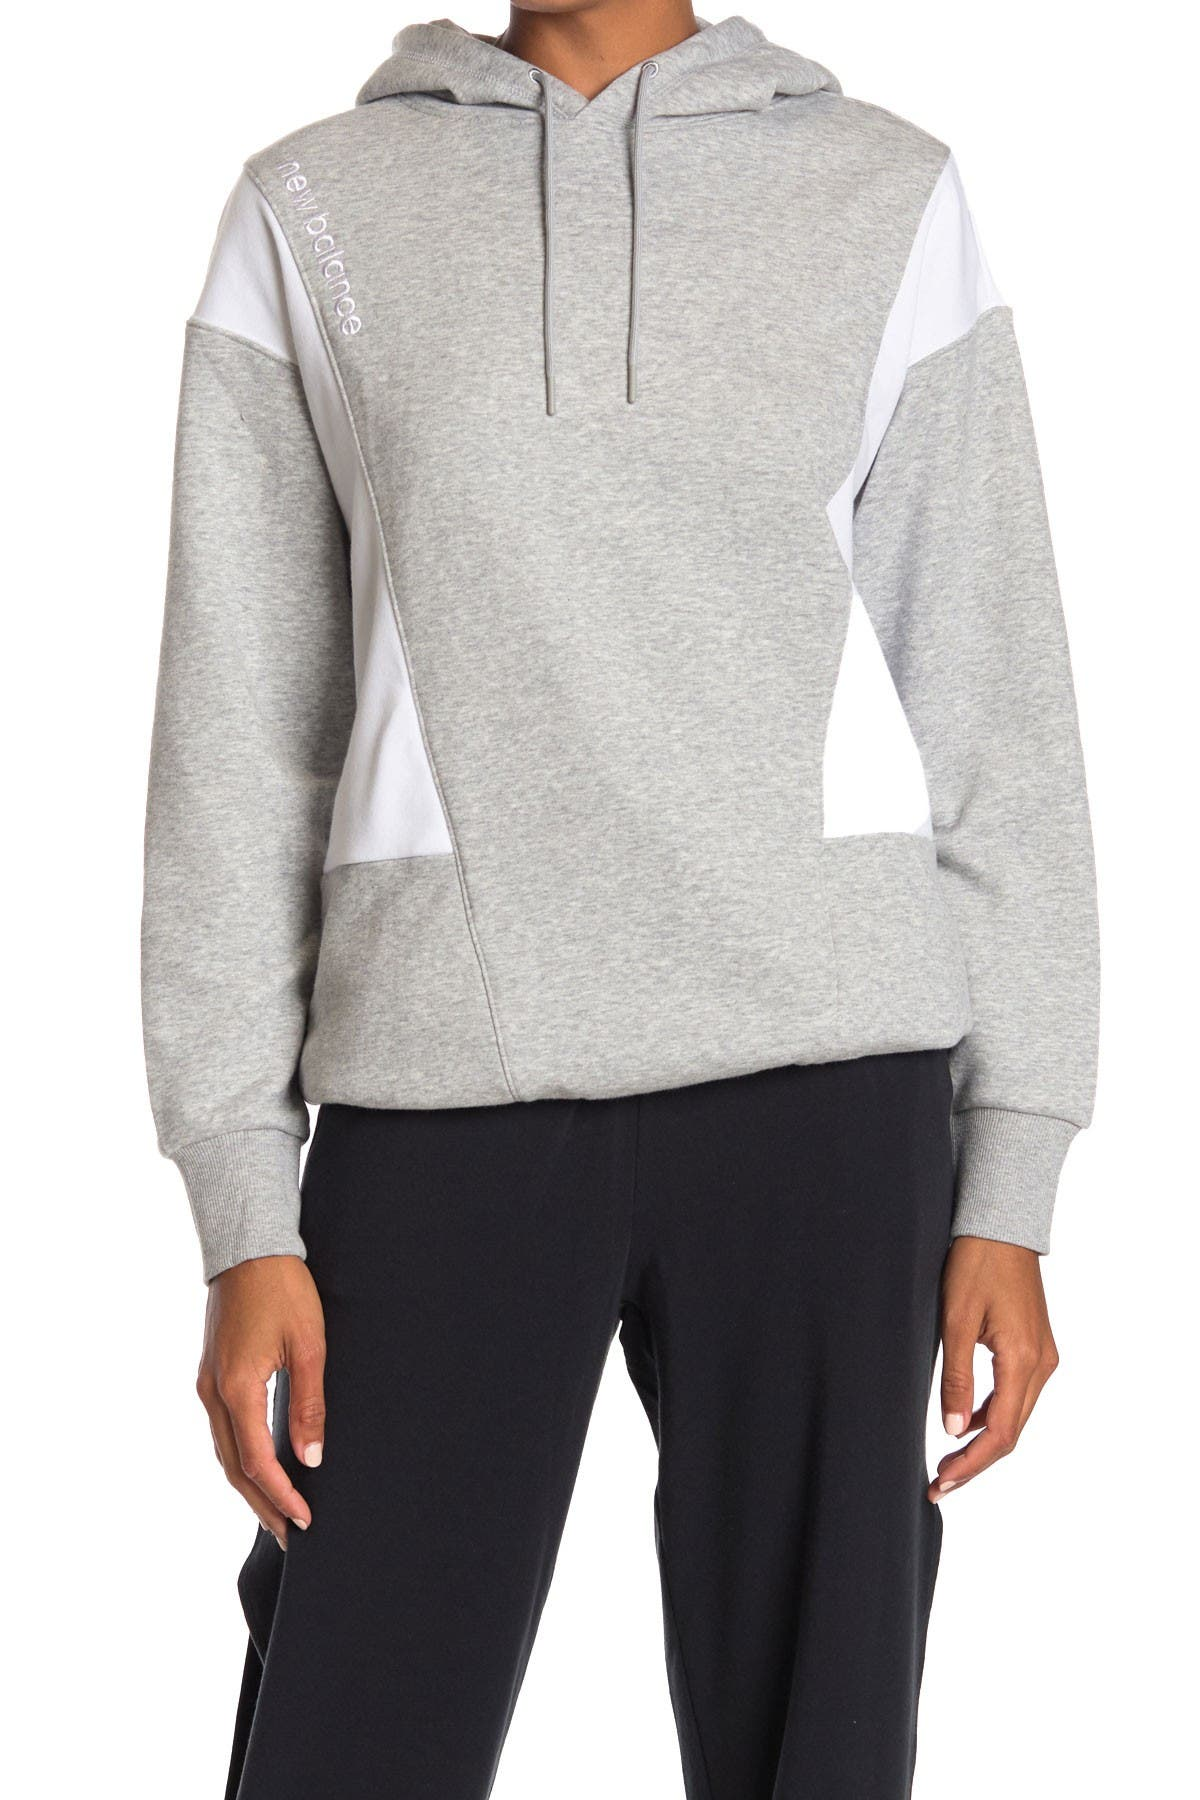 Image of New Balance Classic Knit Hoodie